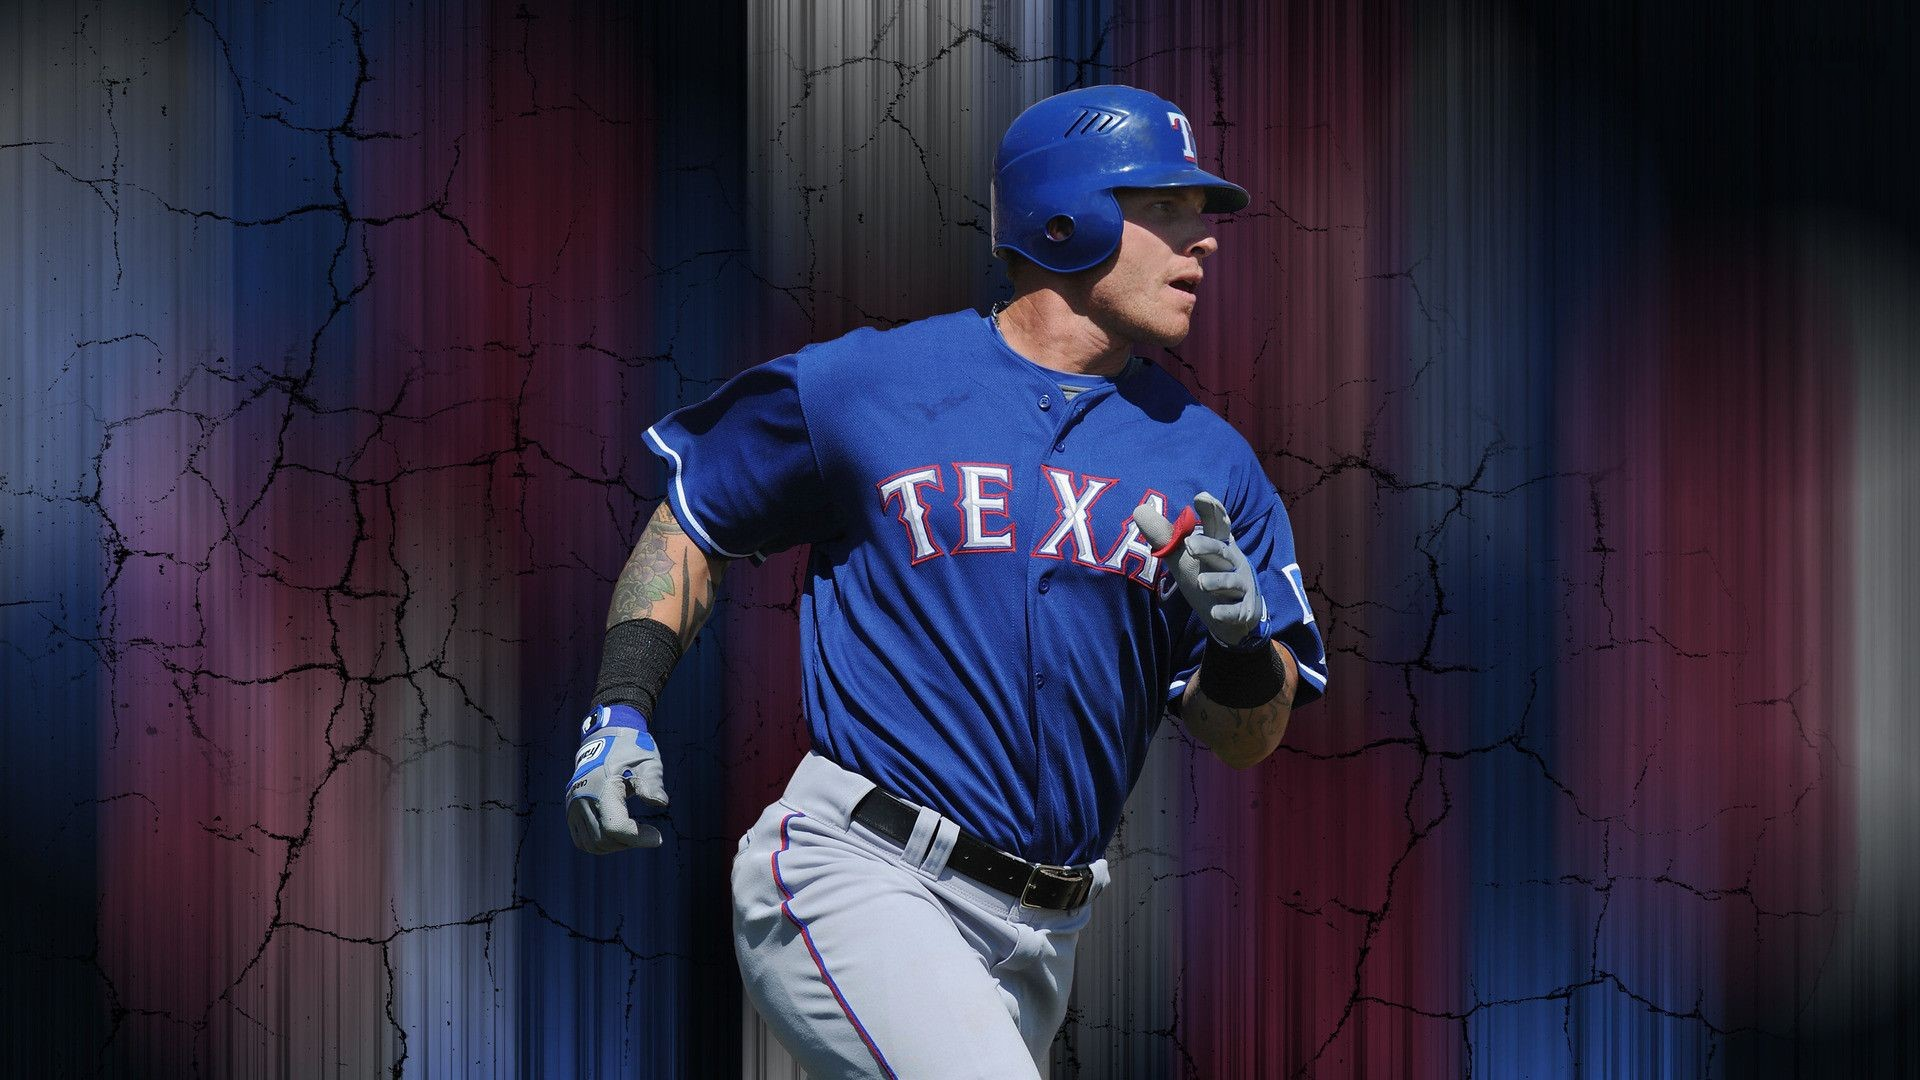 Texas Rangers Android Wallpaper HD Android Wallpapers Pinterest